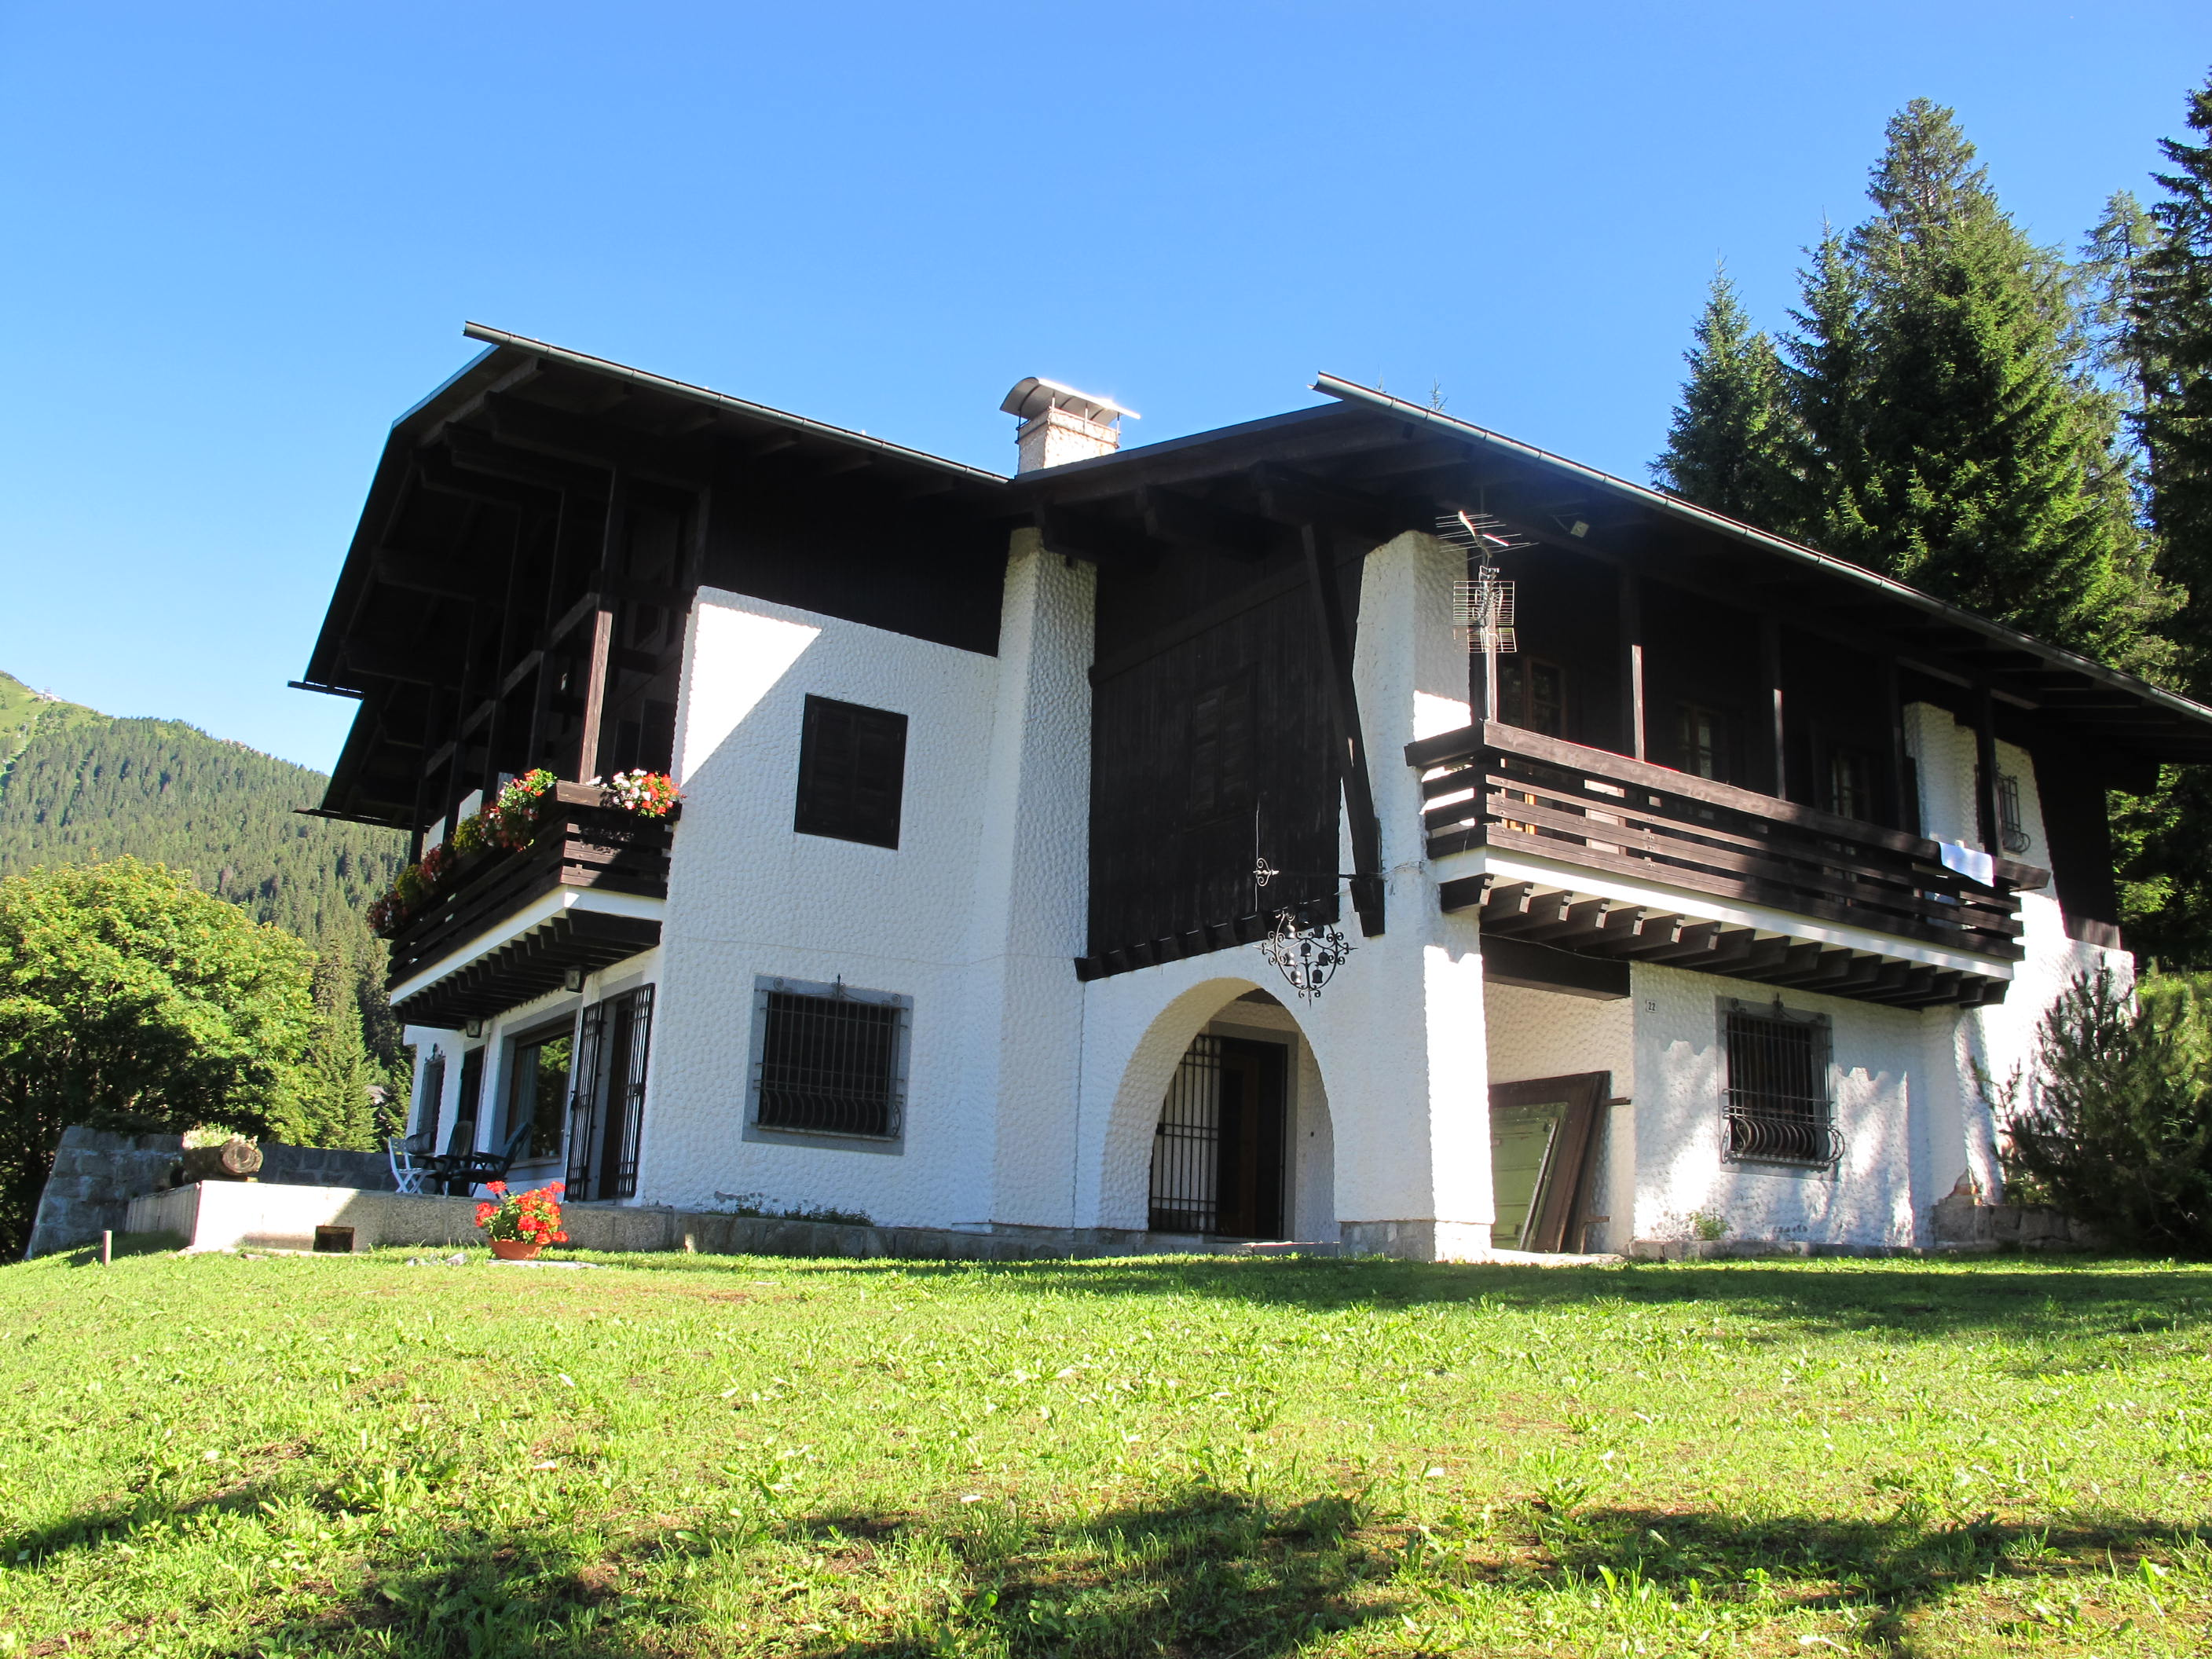 Single Family Home for Sale at Mountain villa with private park on the Dolomites Madonna di Campiglio Madonna Di Campiglio, Trento 38086 Italy